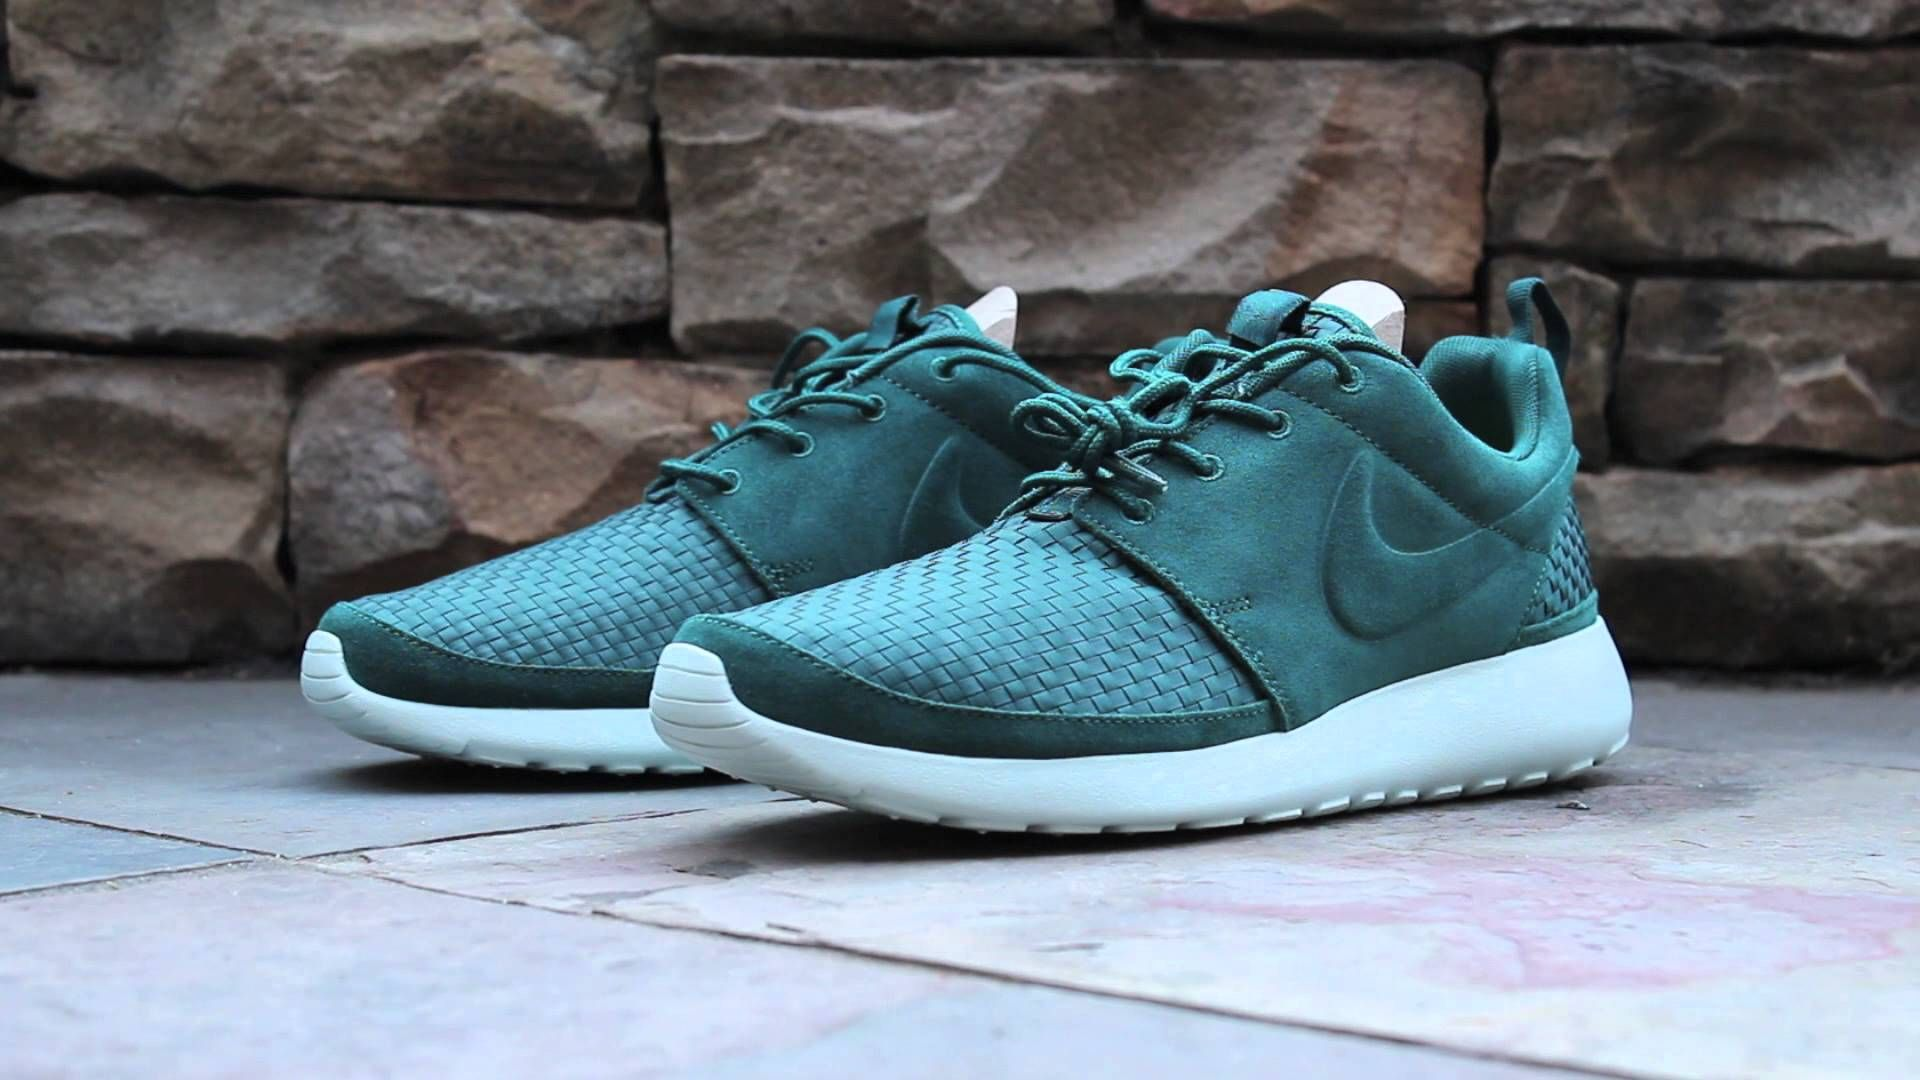 timeless design b7347 46381 Nike Roshe Run Woven in Mono Green colourway. My first pair of Roshies,  but not my last! I bought these for my last trip to Japan.